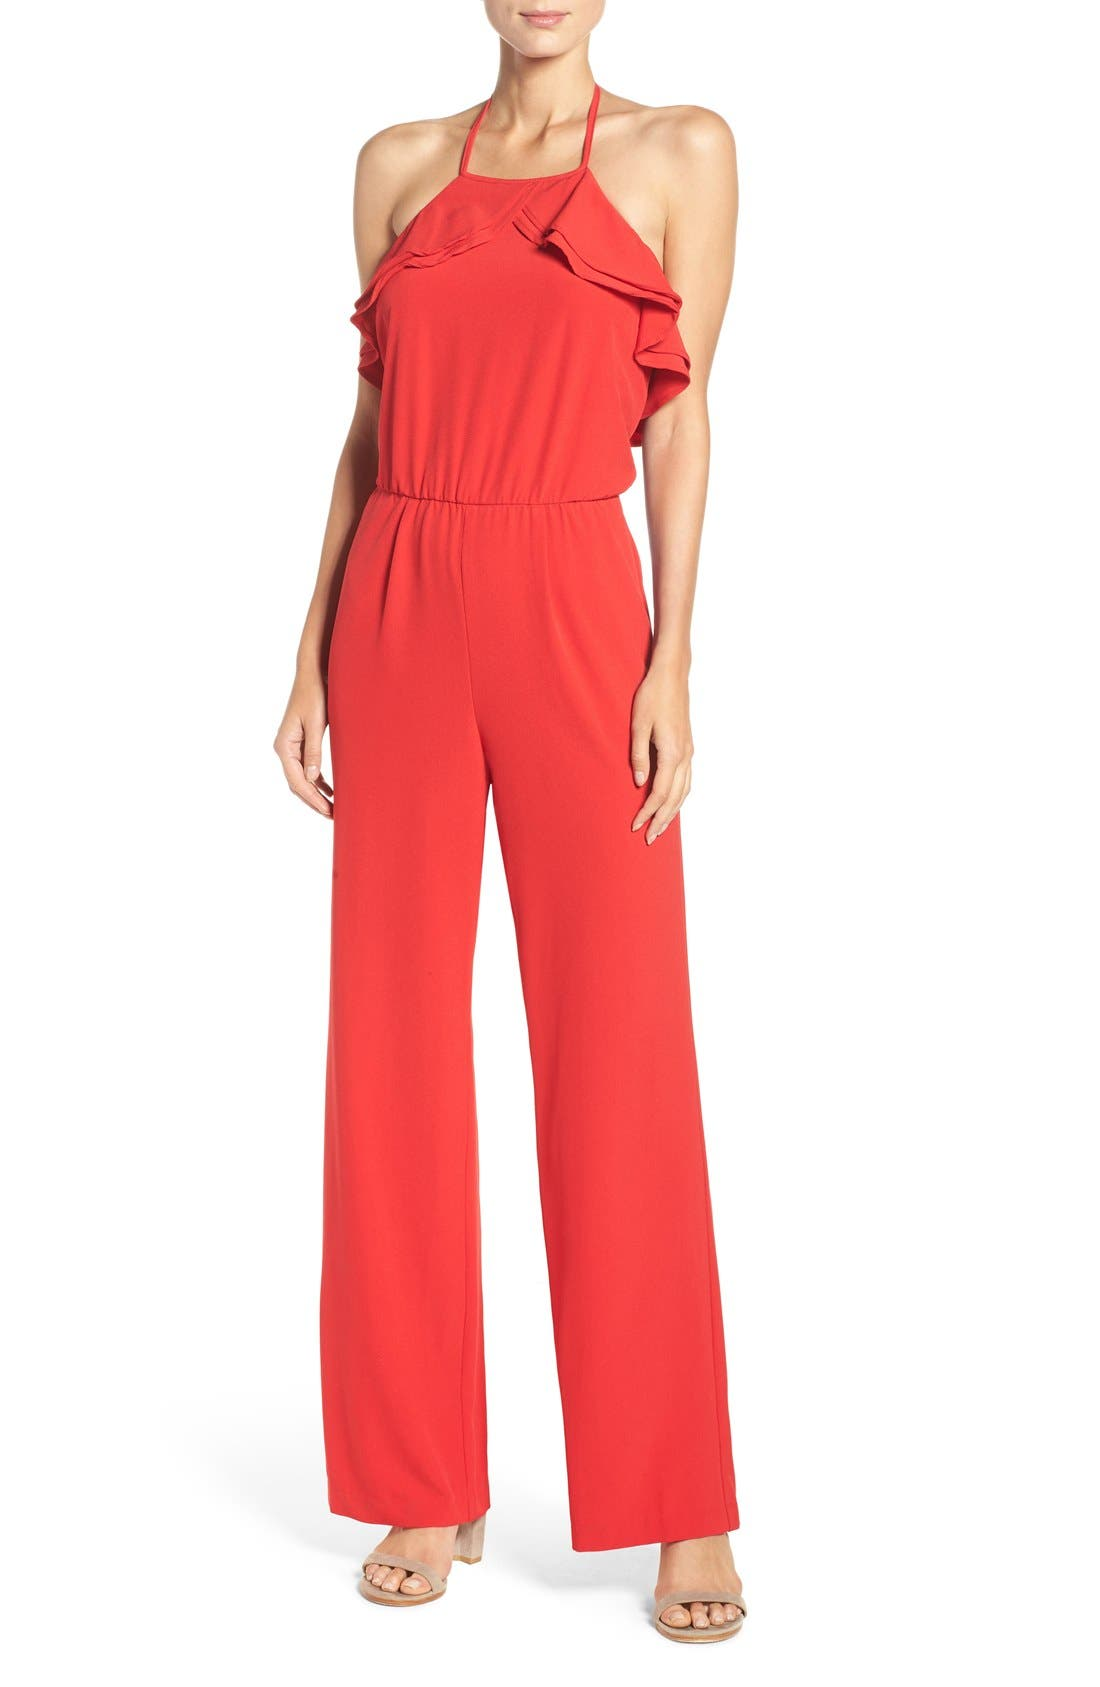 Ruffle Halter Jumpsuit,                             Main thumbnail 1, color,                             Red